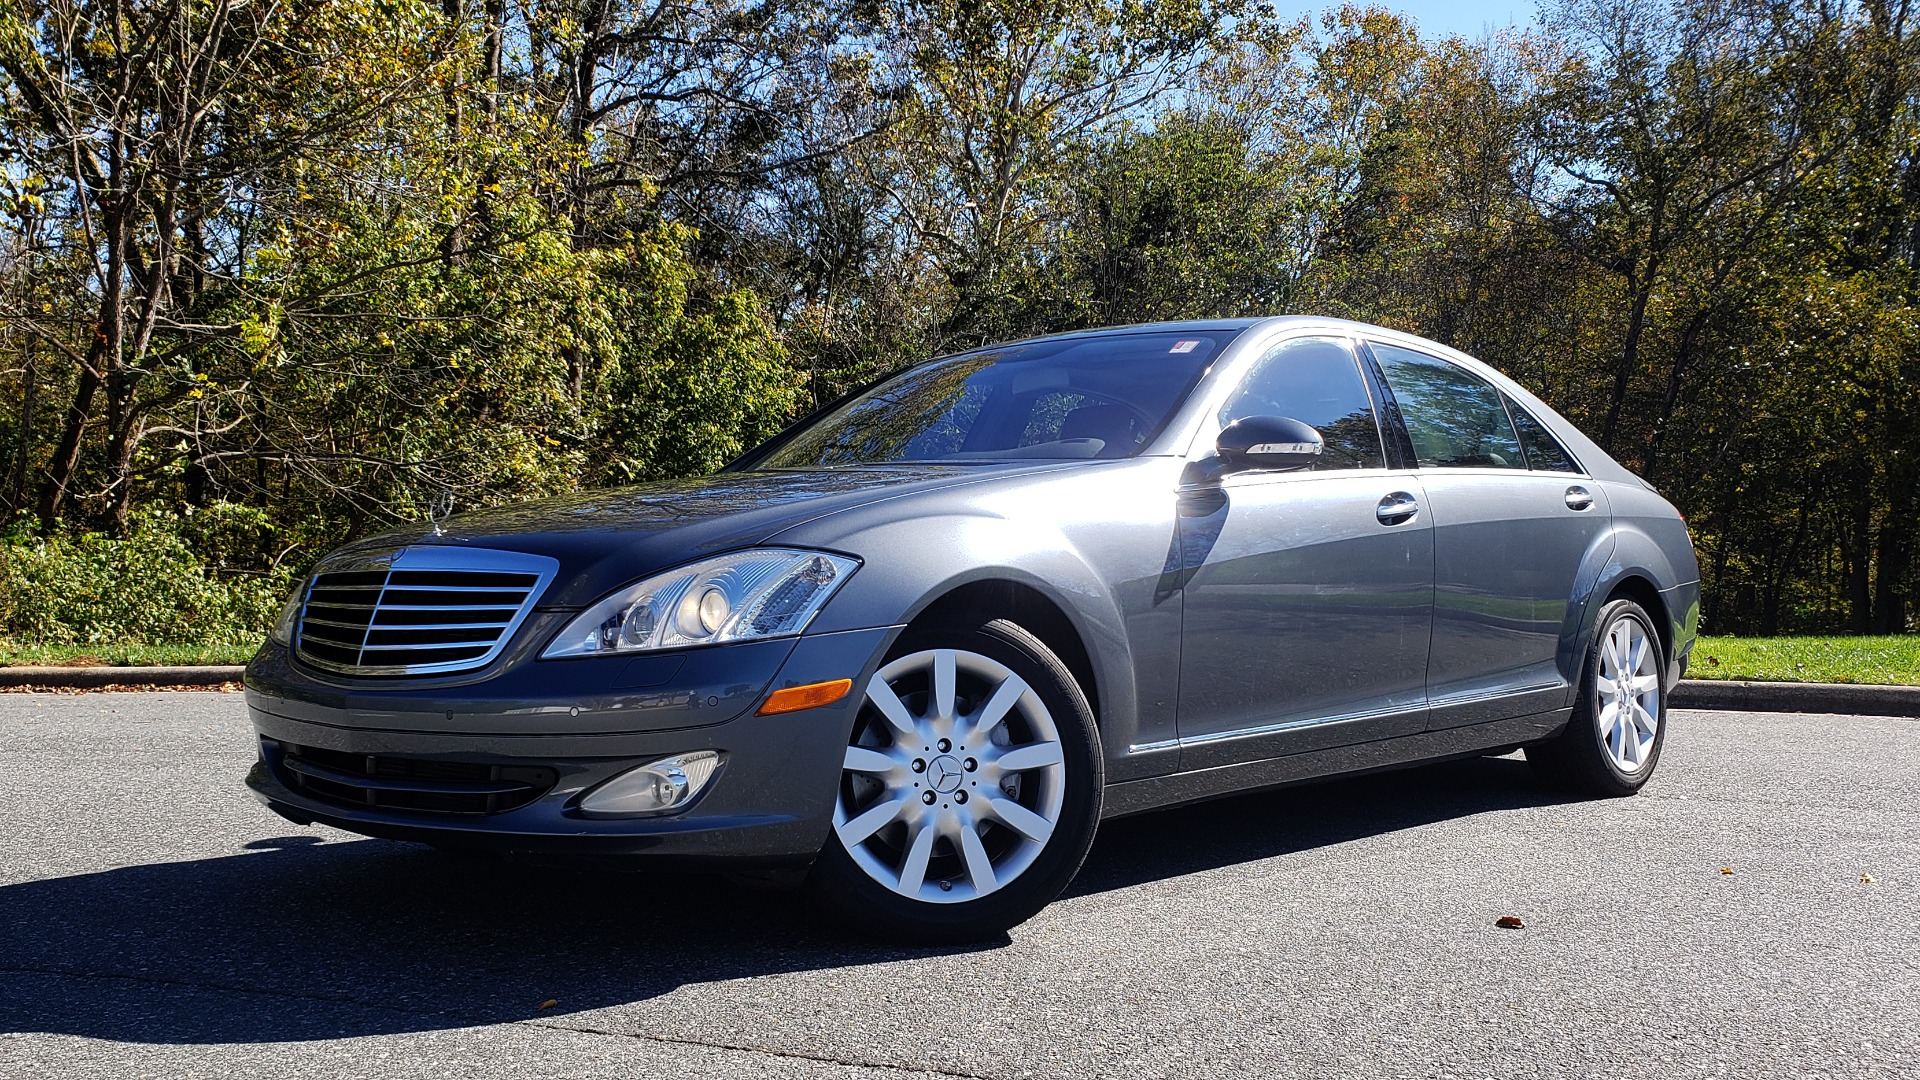 Used 2007 Mercedes-Benz S-CLASS S550 5.5L V8 / LWB / PREM 2 / NAV / SUNROOF / KEYLESS-GO for sale Sold at Formula Imports in Charlotte NC 28227 1